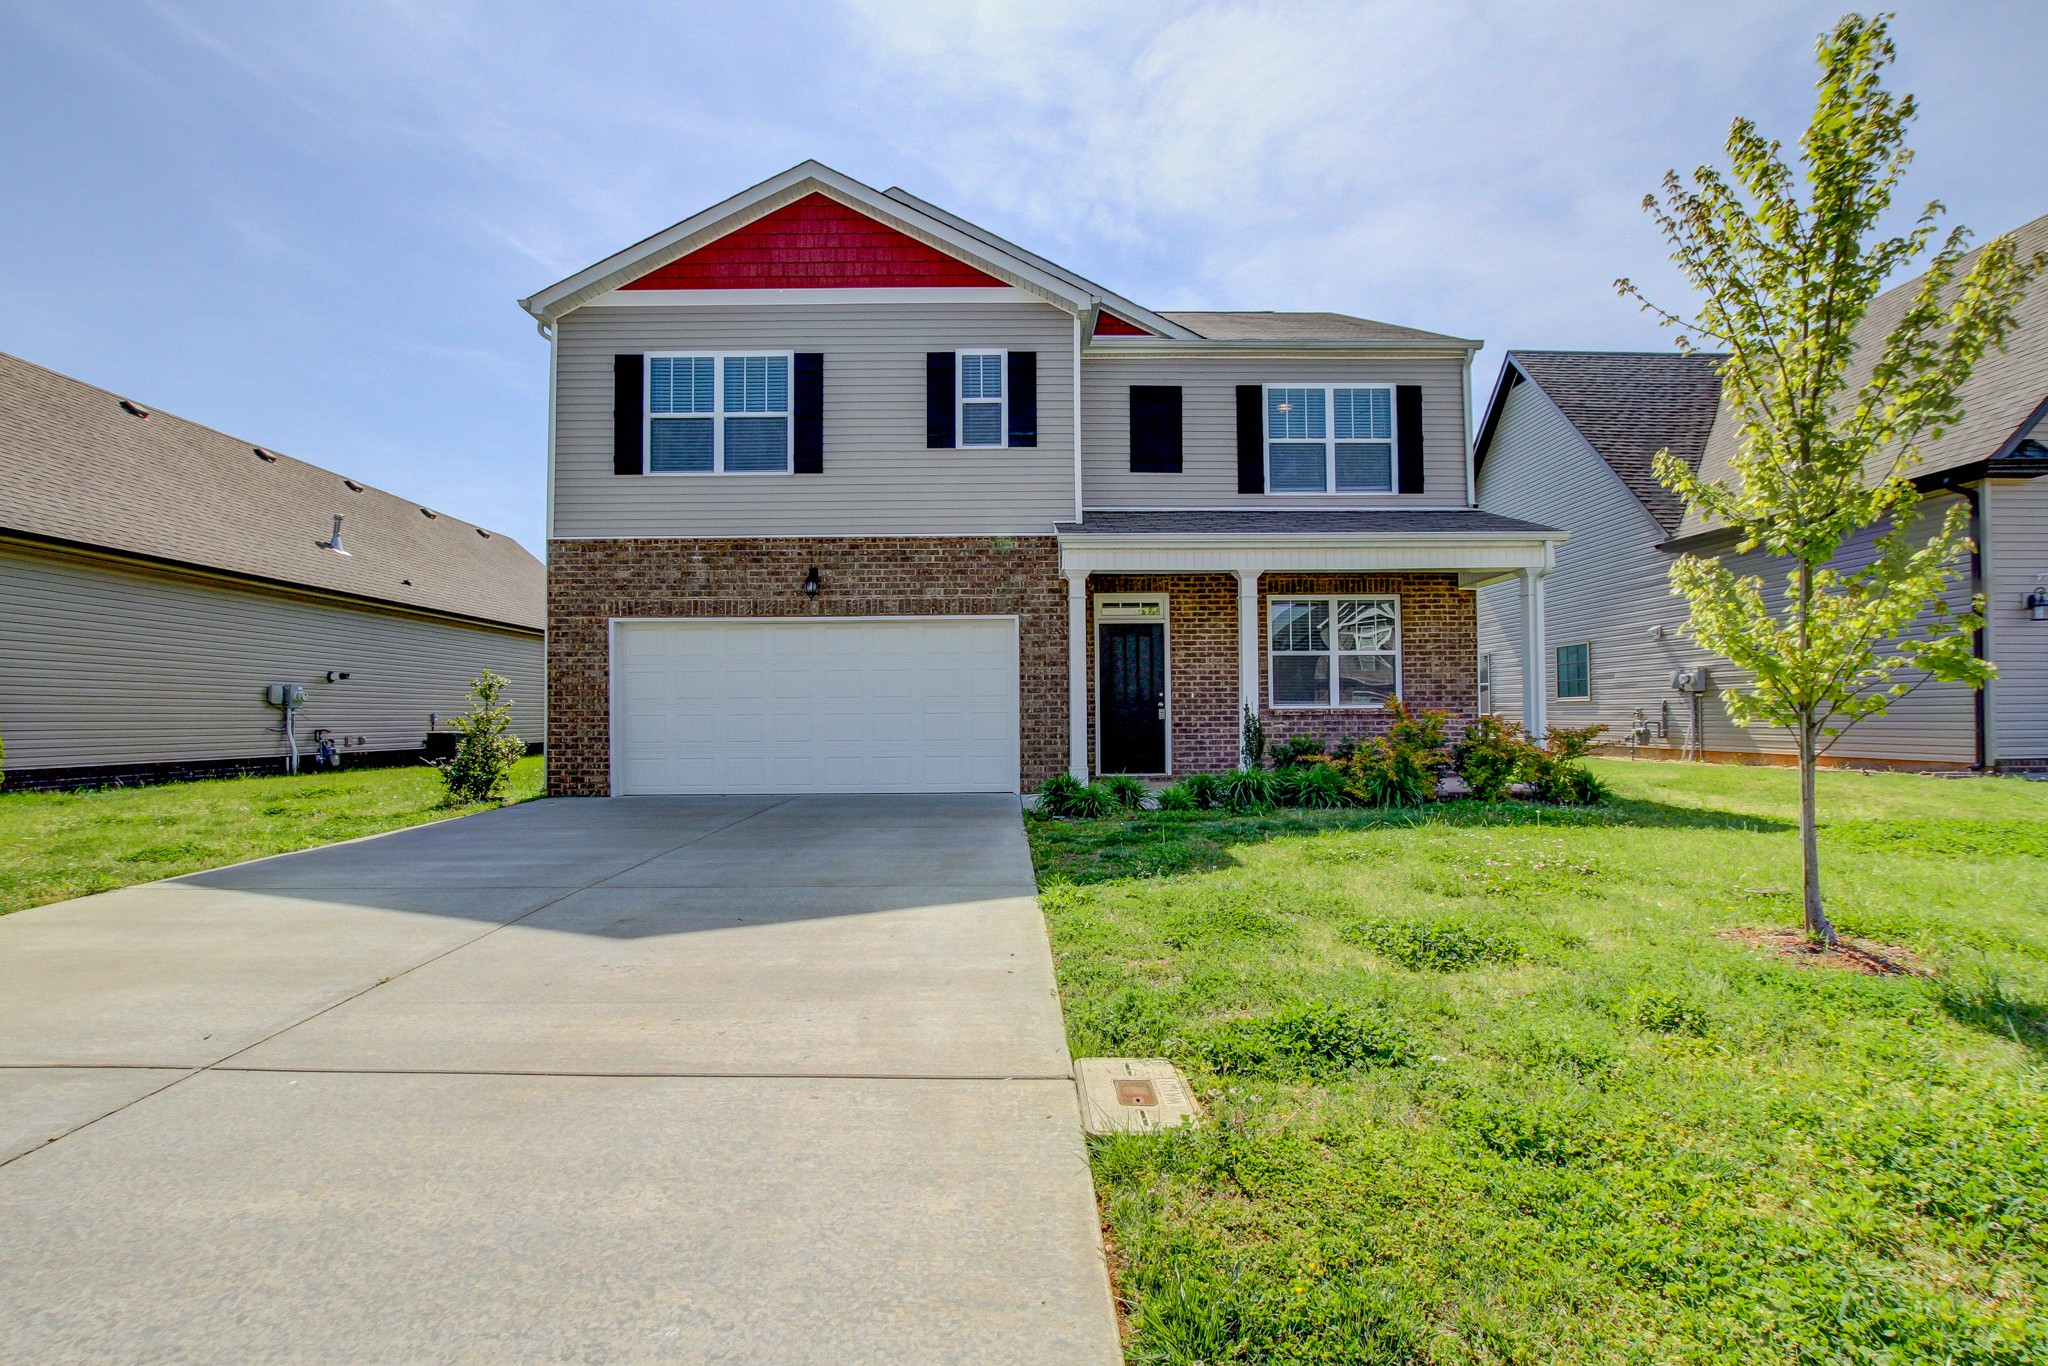 1237 Winterset Dr Property Photo - Clarksville, TN real estate listing